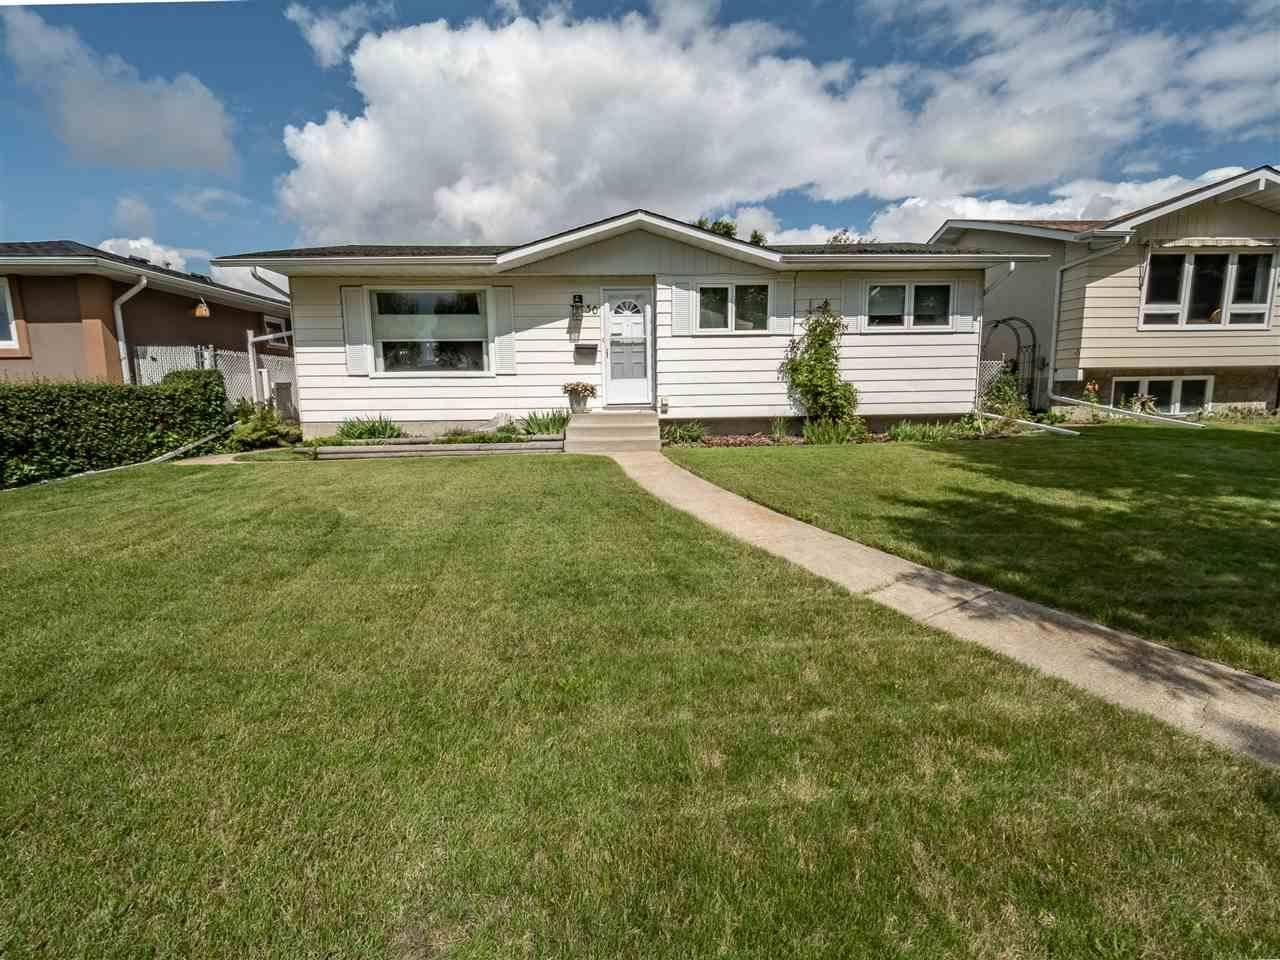 House for sale at 30 Nootka Rd Leduc Alberta - MLS: E4173463